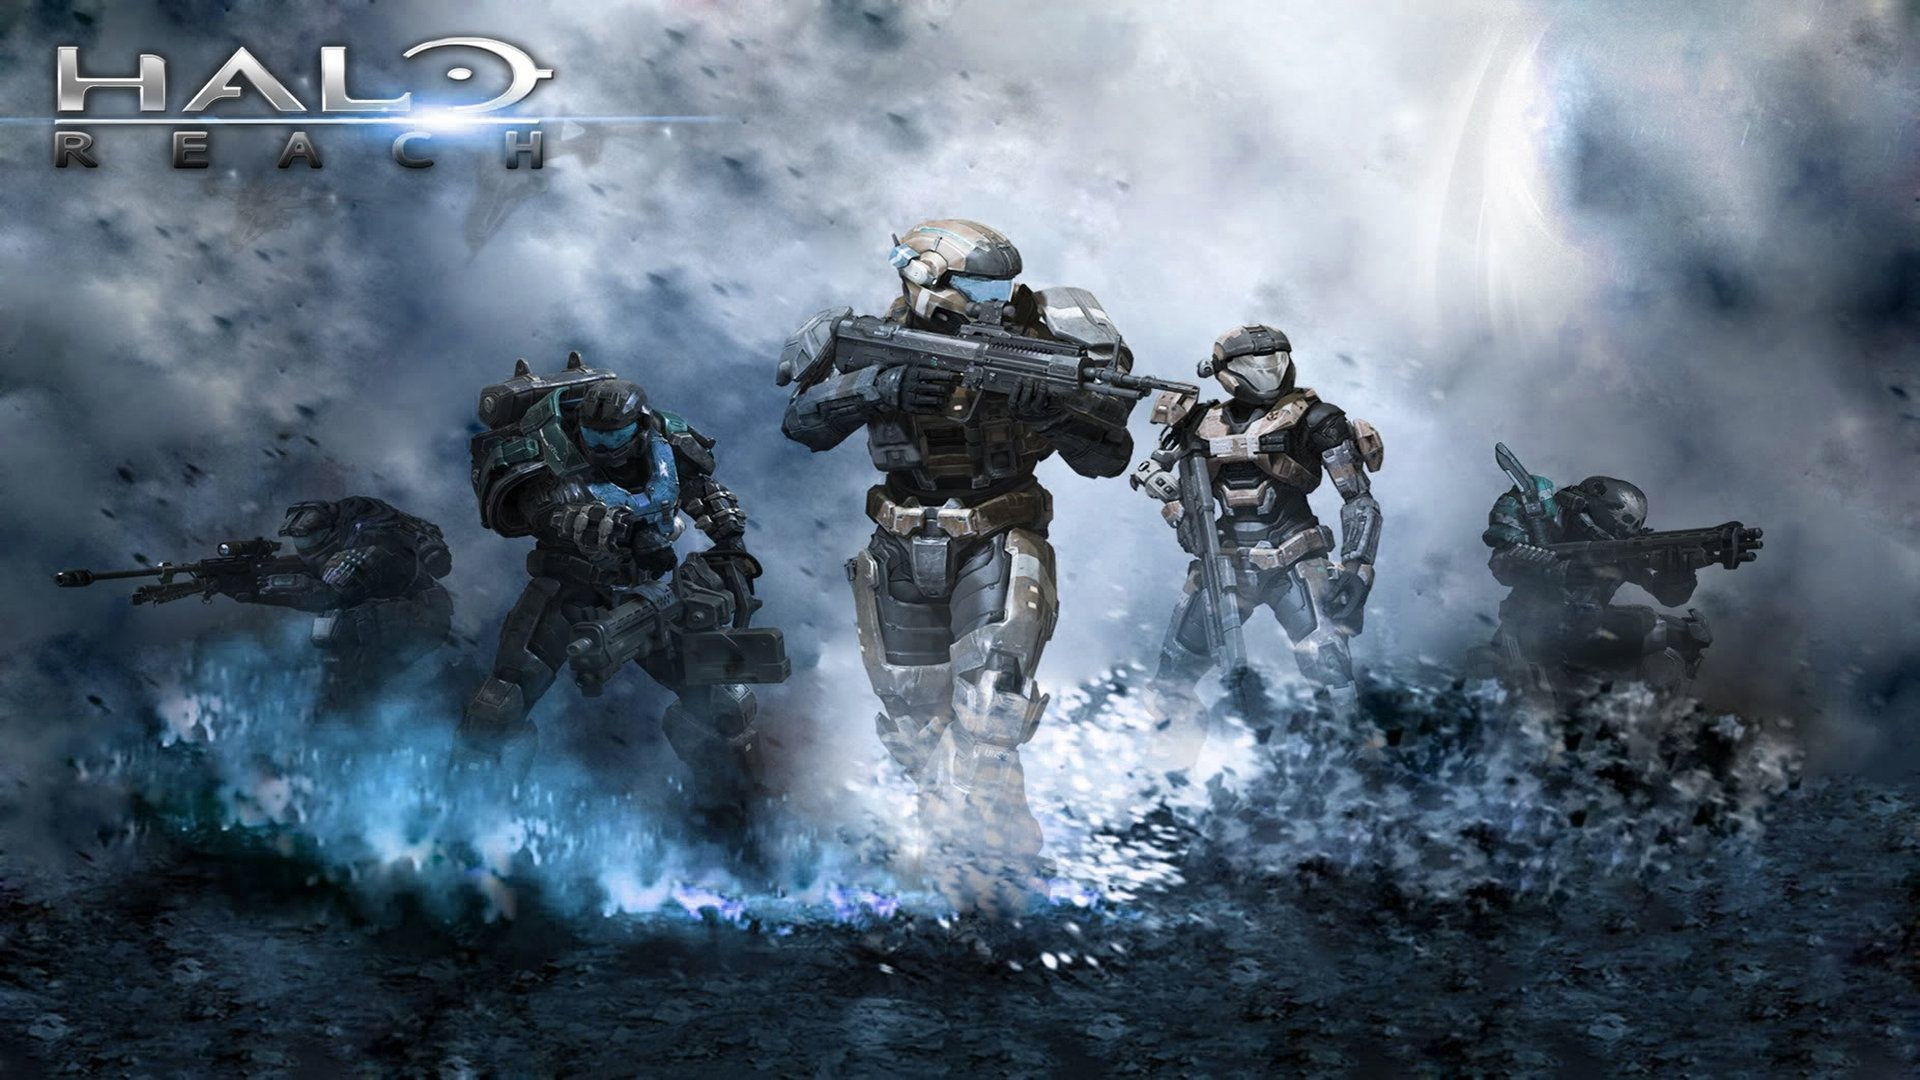 1920x1080 Halo HD Wallpapers Backgrounds Wallpaper 1920×1200 Halo Wallpaper Hd (37  Wallpapers) |